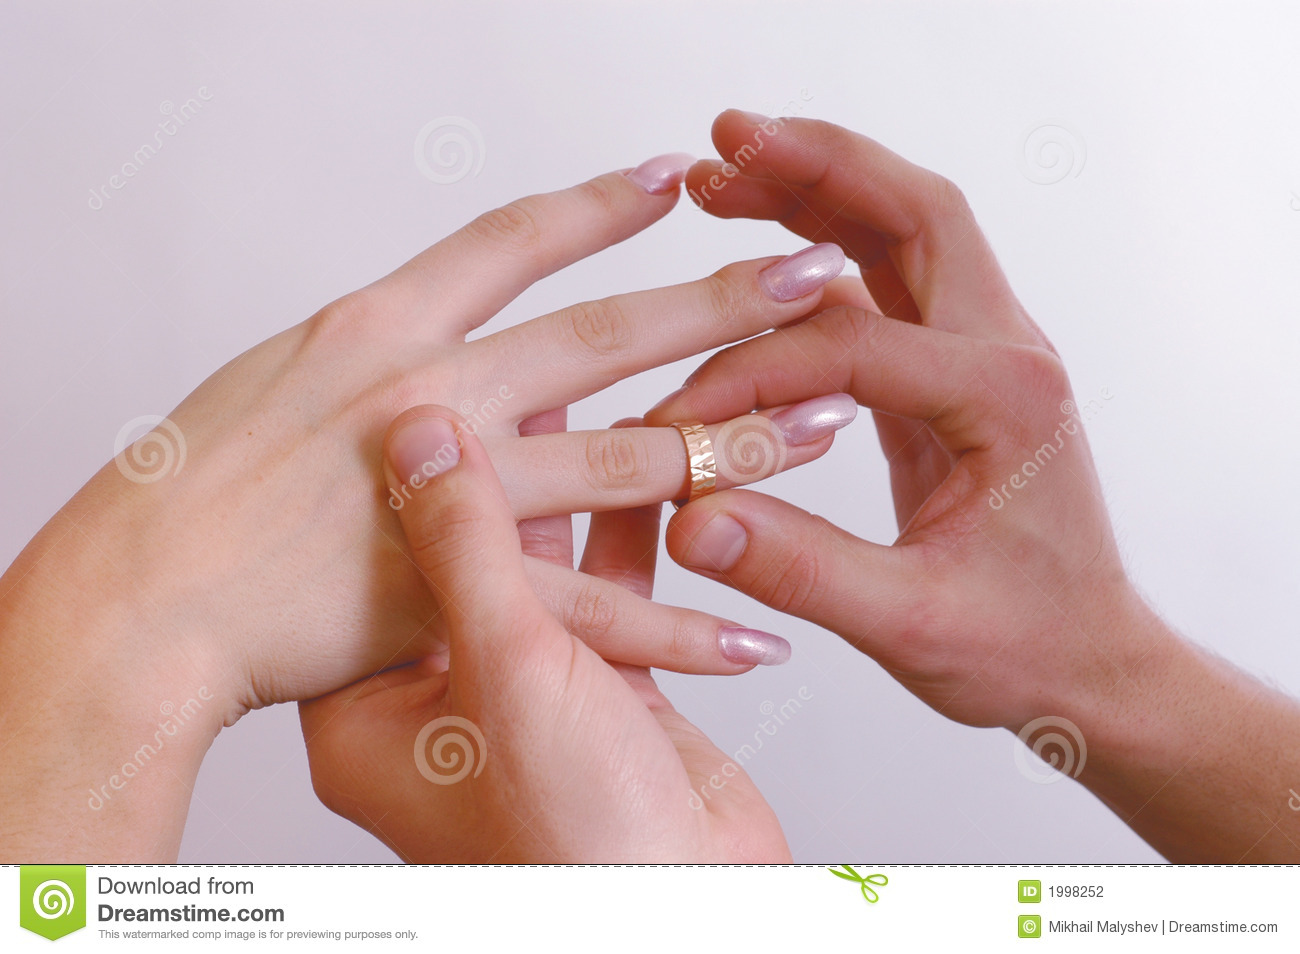 Hands with rings stock photo. Image of groom, affectionate - 1998252